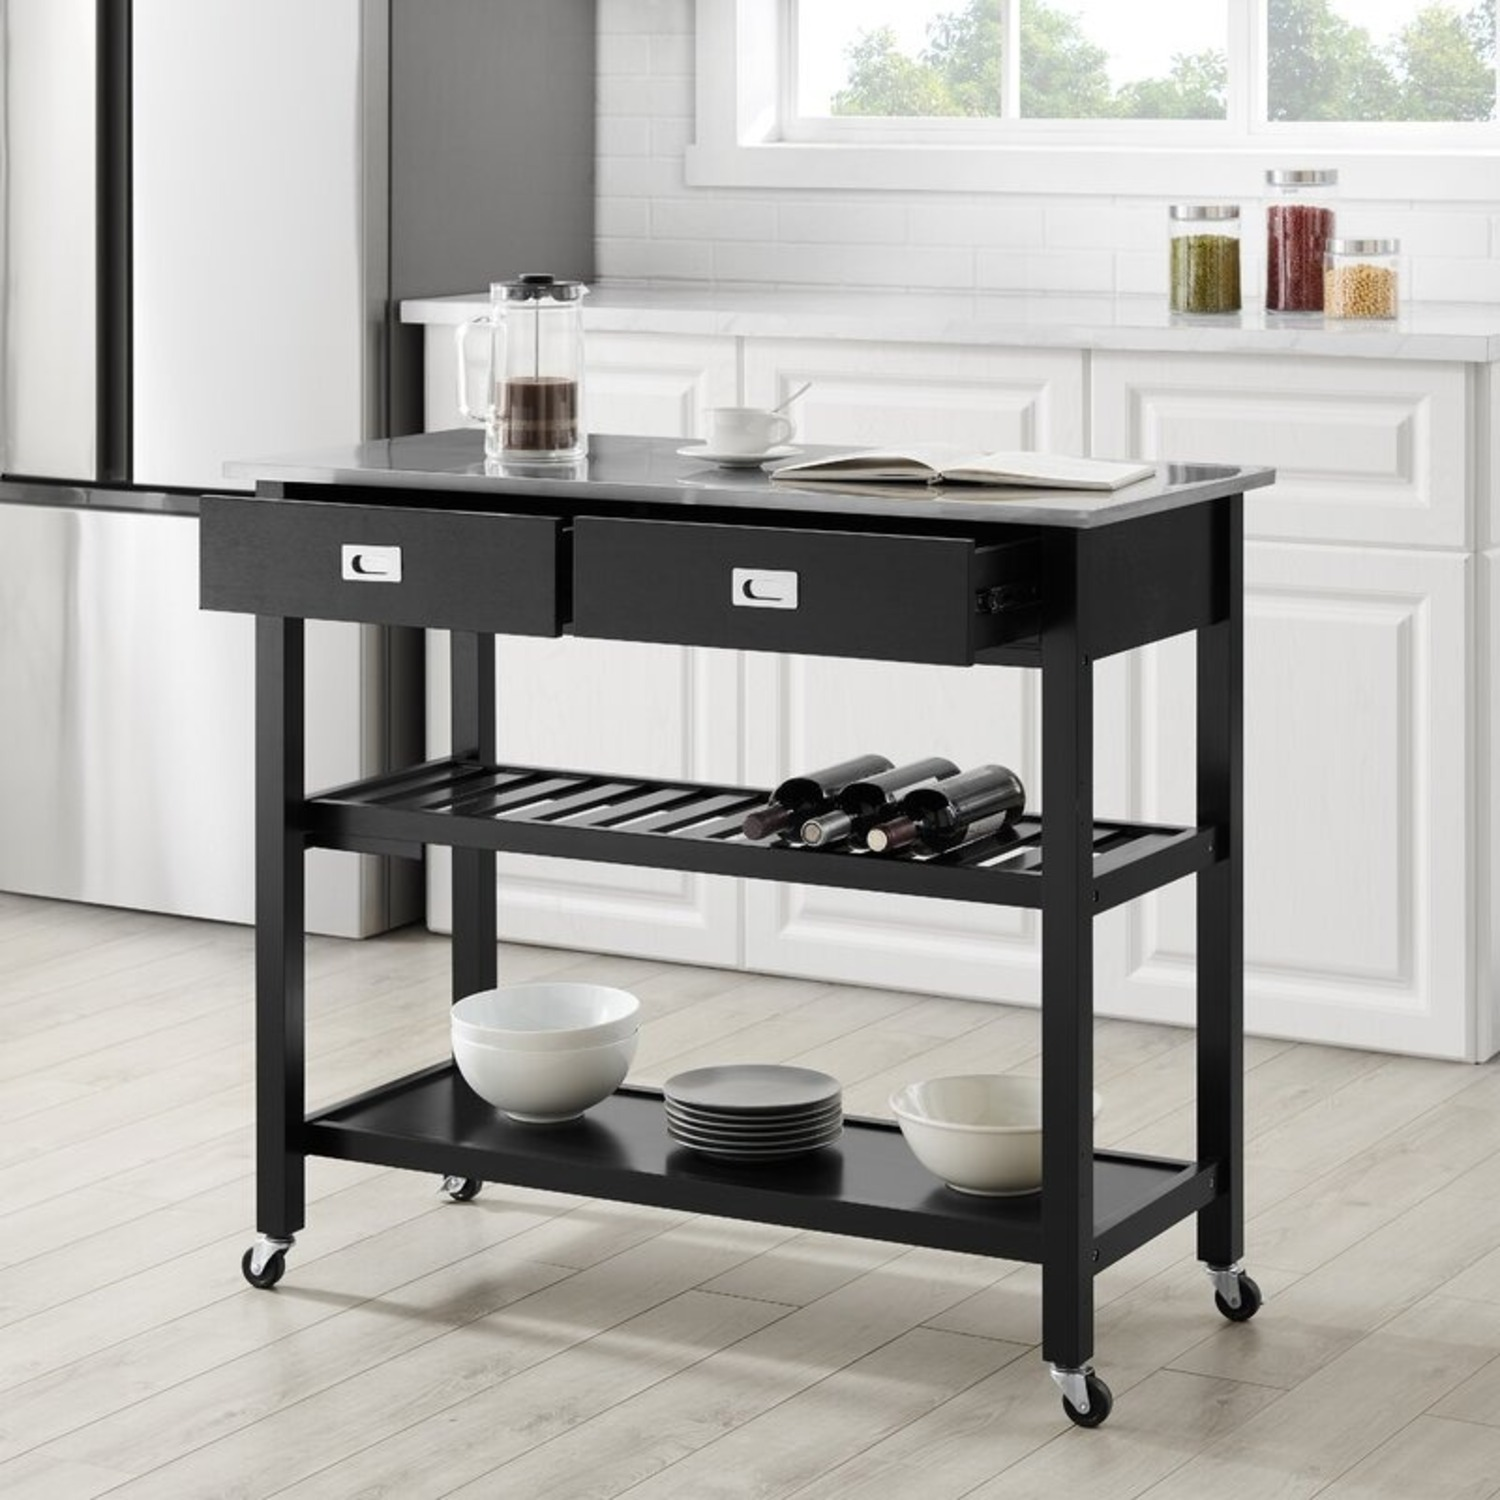 Wayfair Kitchen Island with Stainless Steel Top - image-2